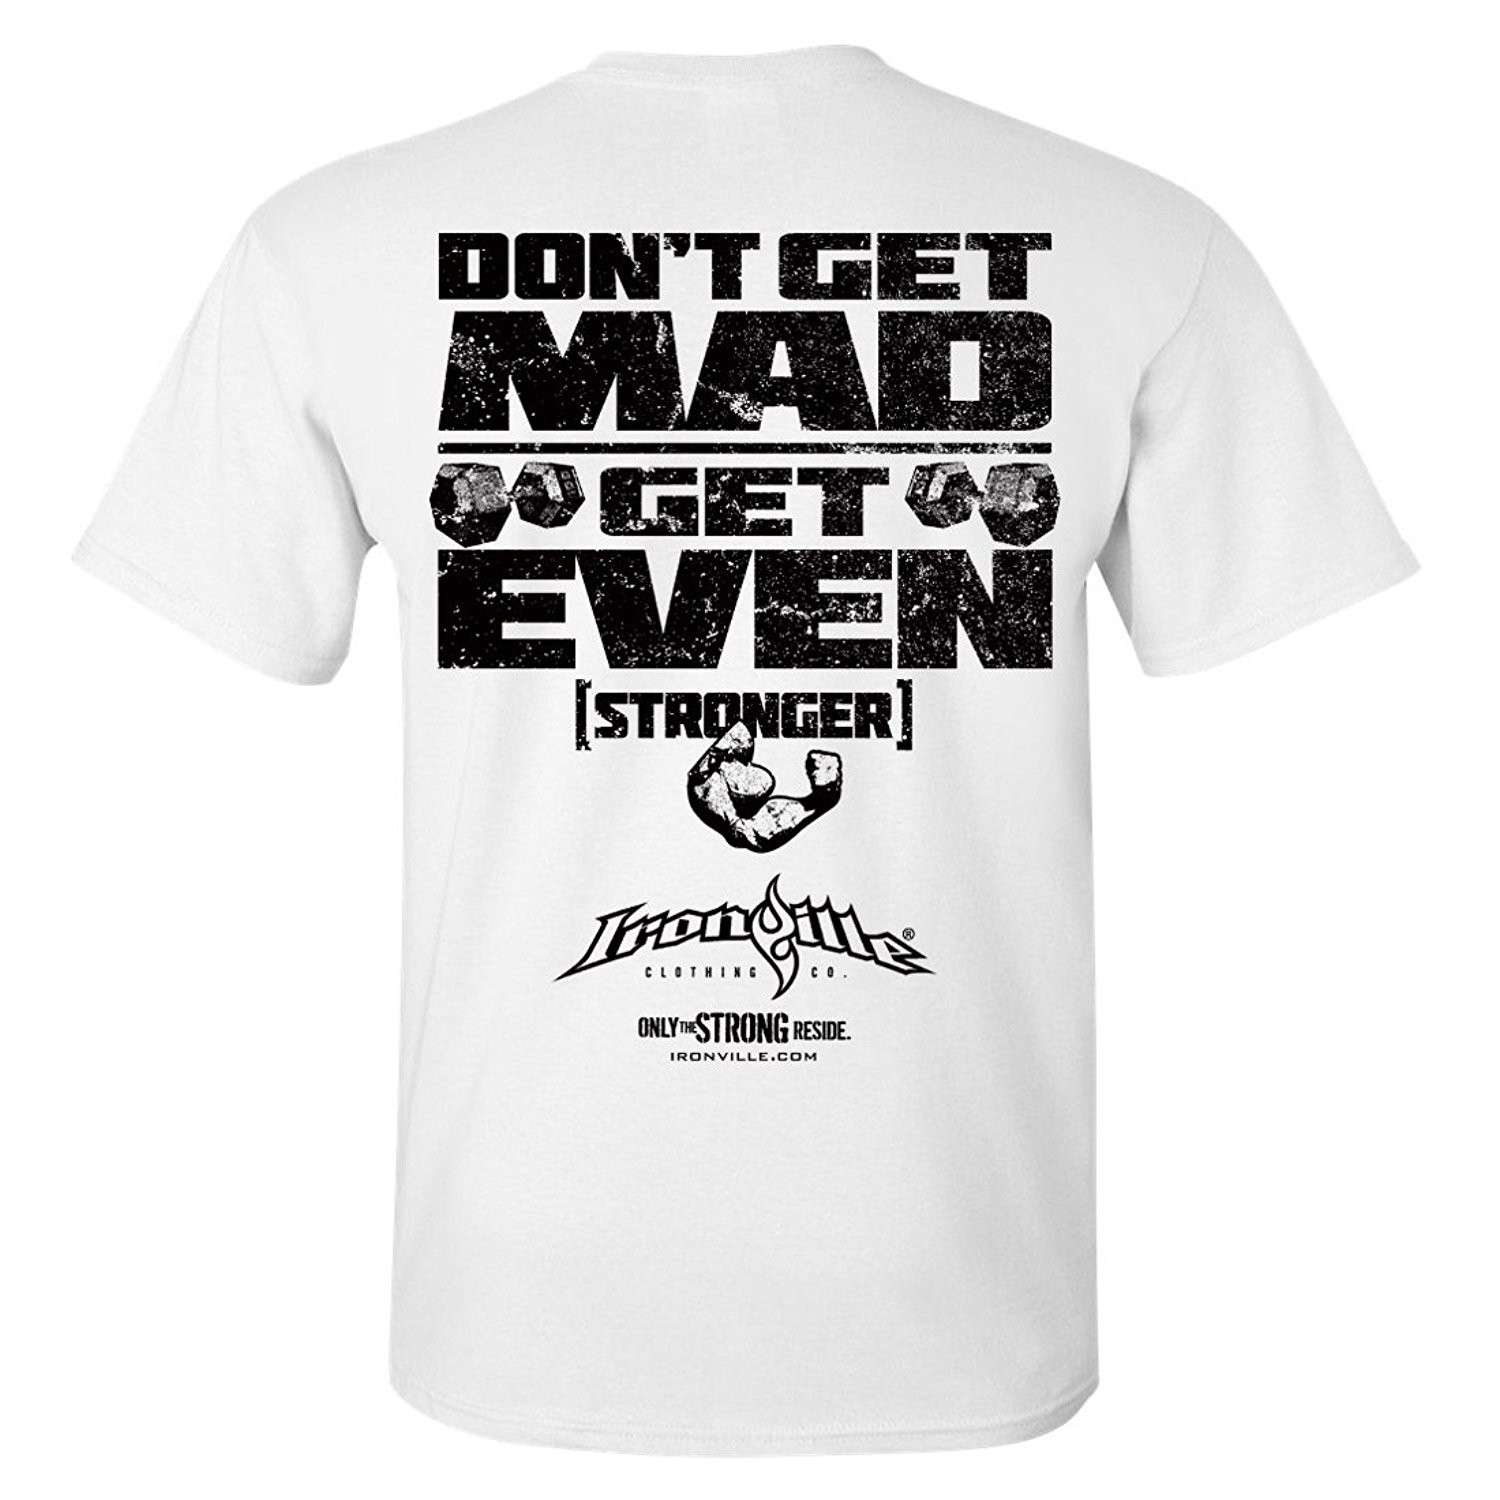 Don't Get Mad Get Even Stronger Powerlifting T-Shirt Mens